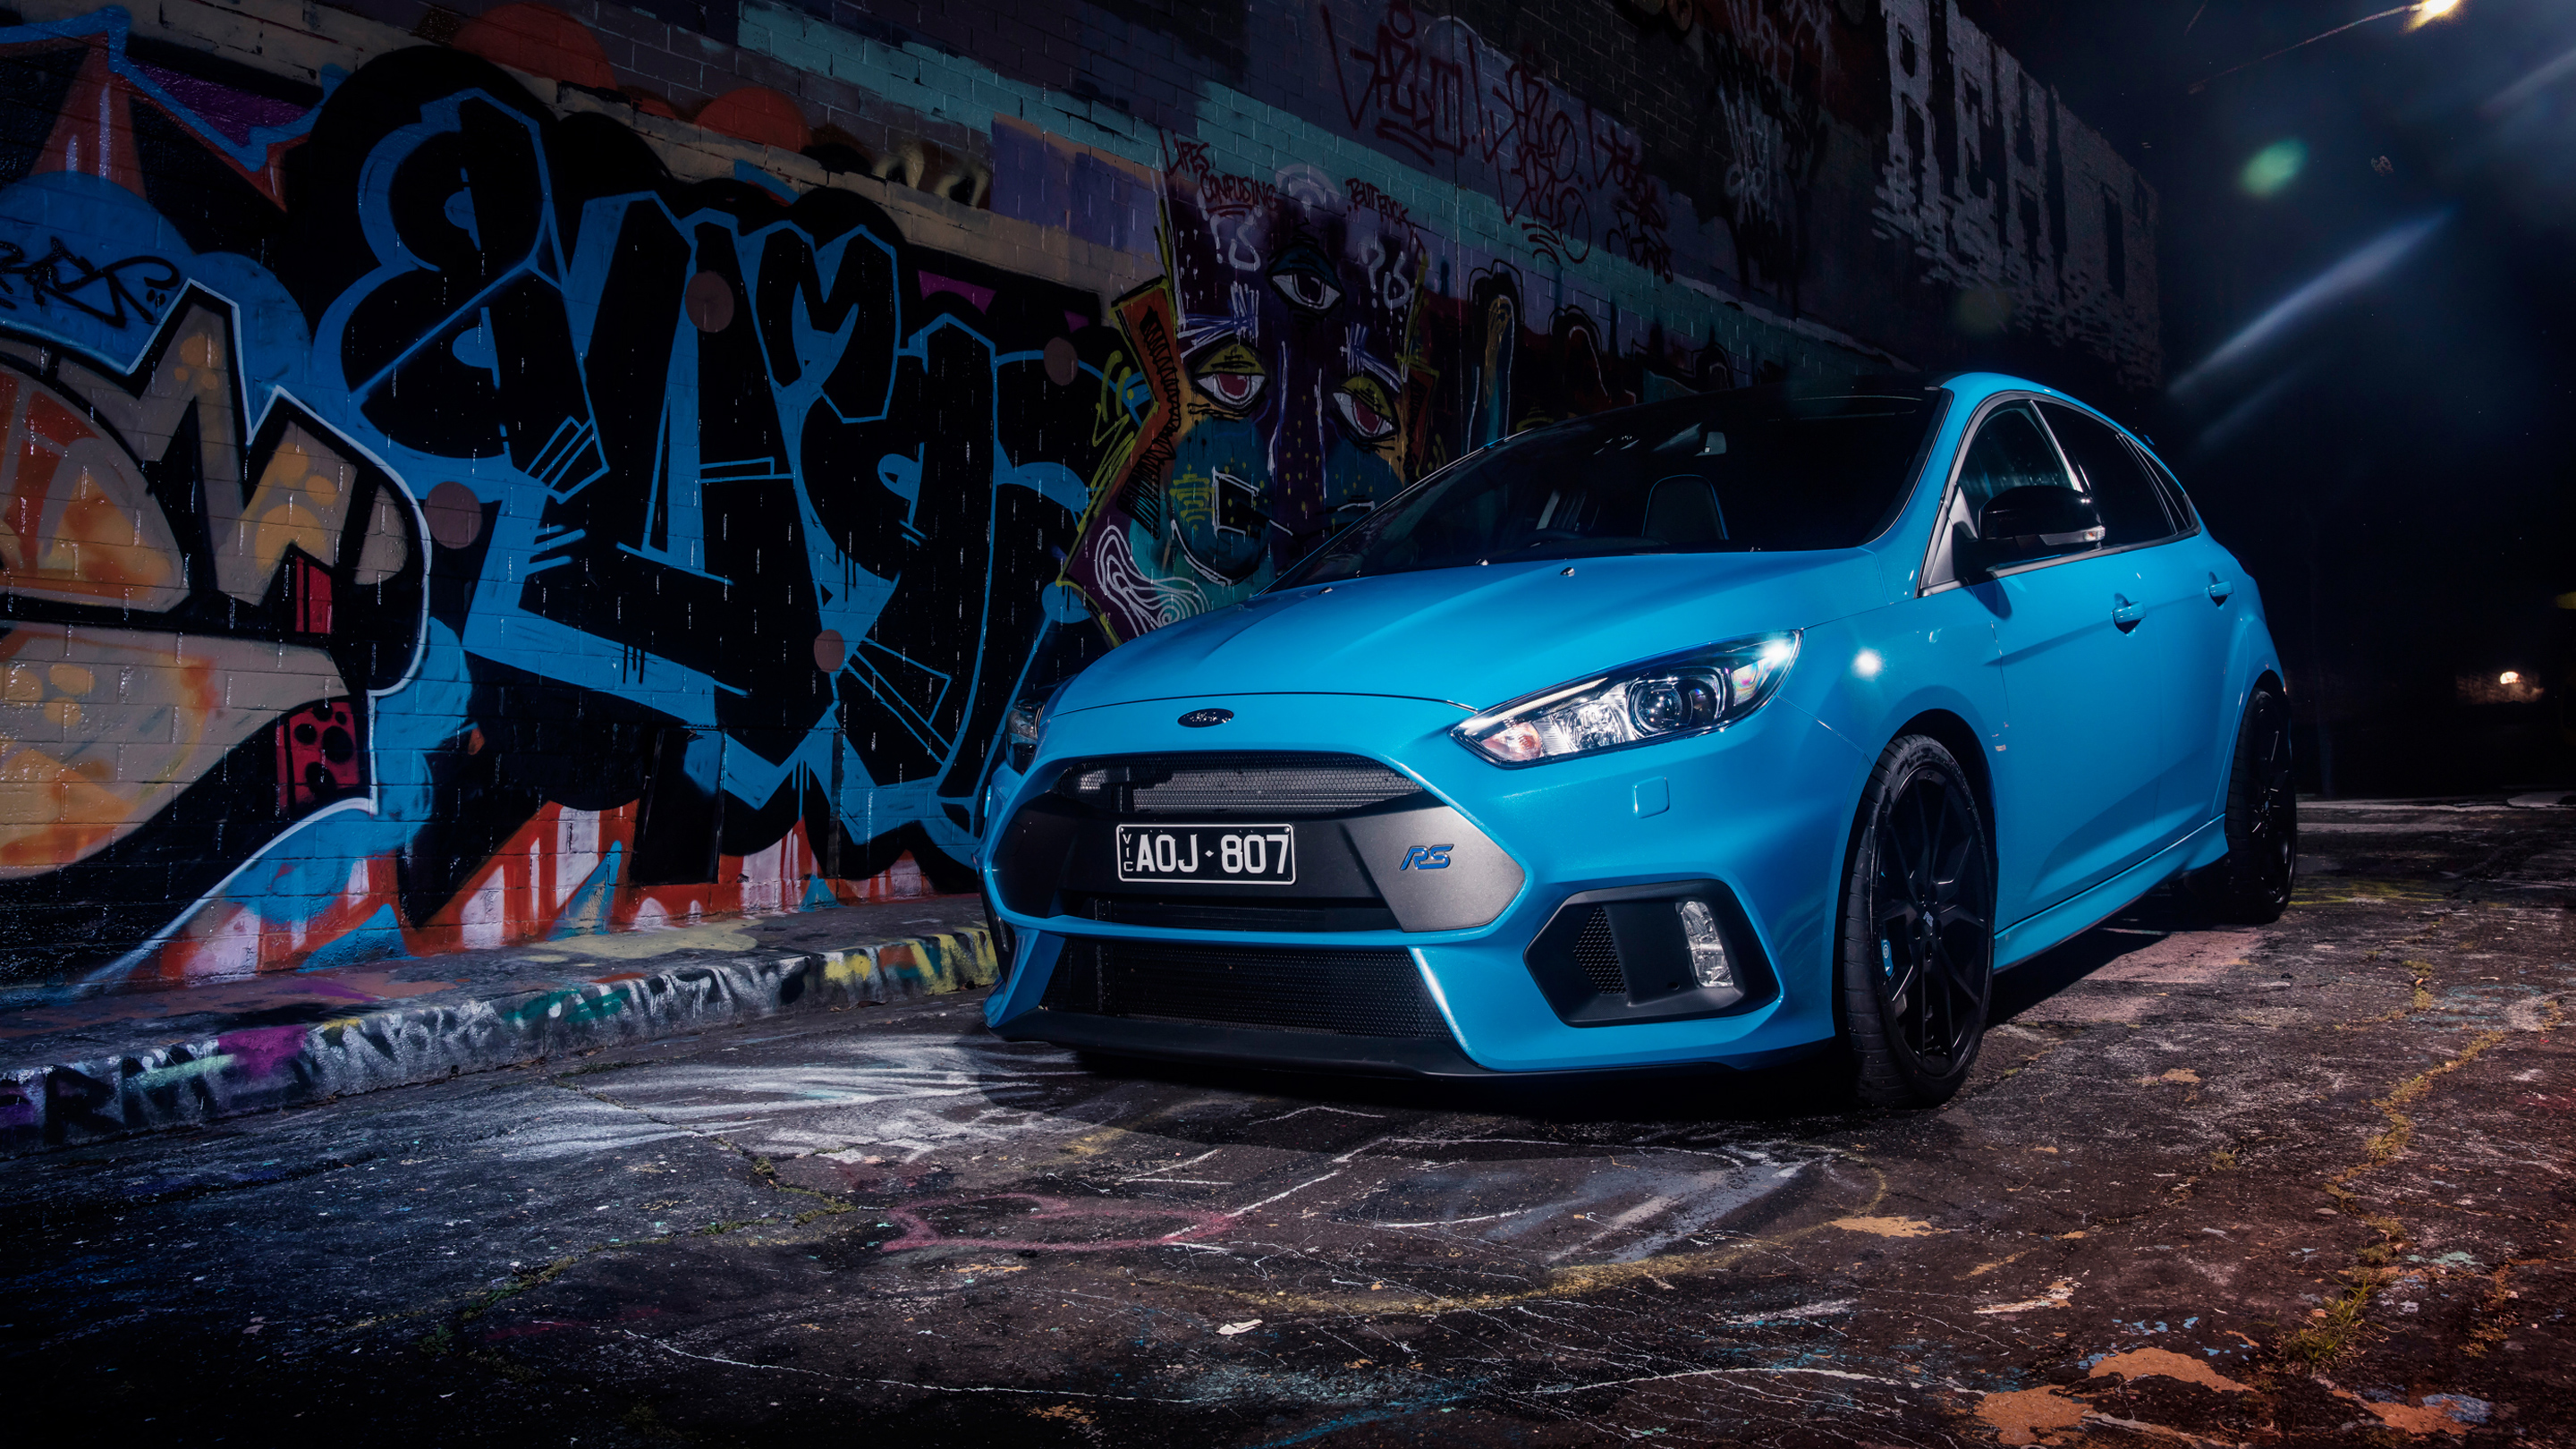 2018 Ford Focus Rs Limited Edition Wallpaper Hd Car Wallpapers